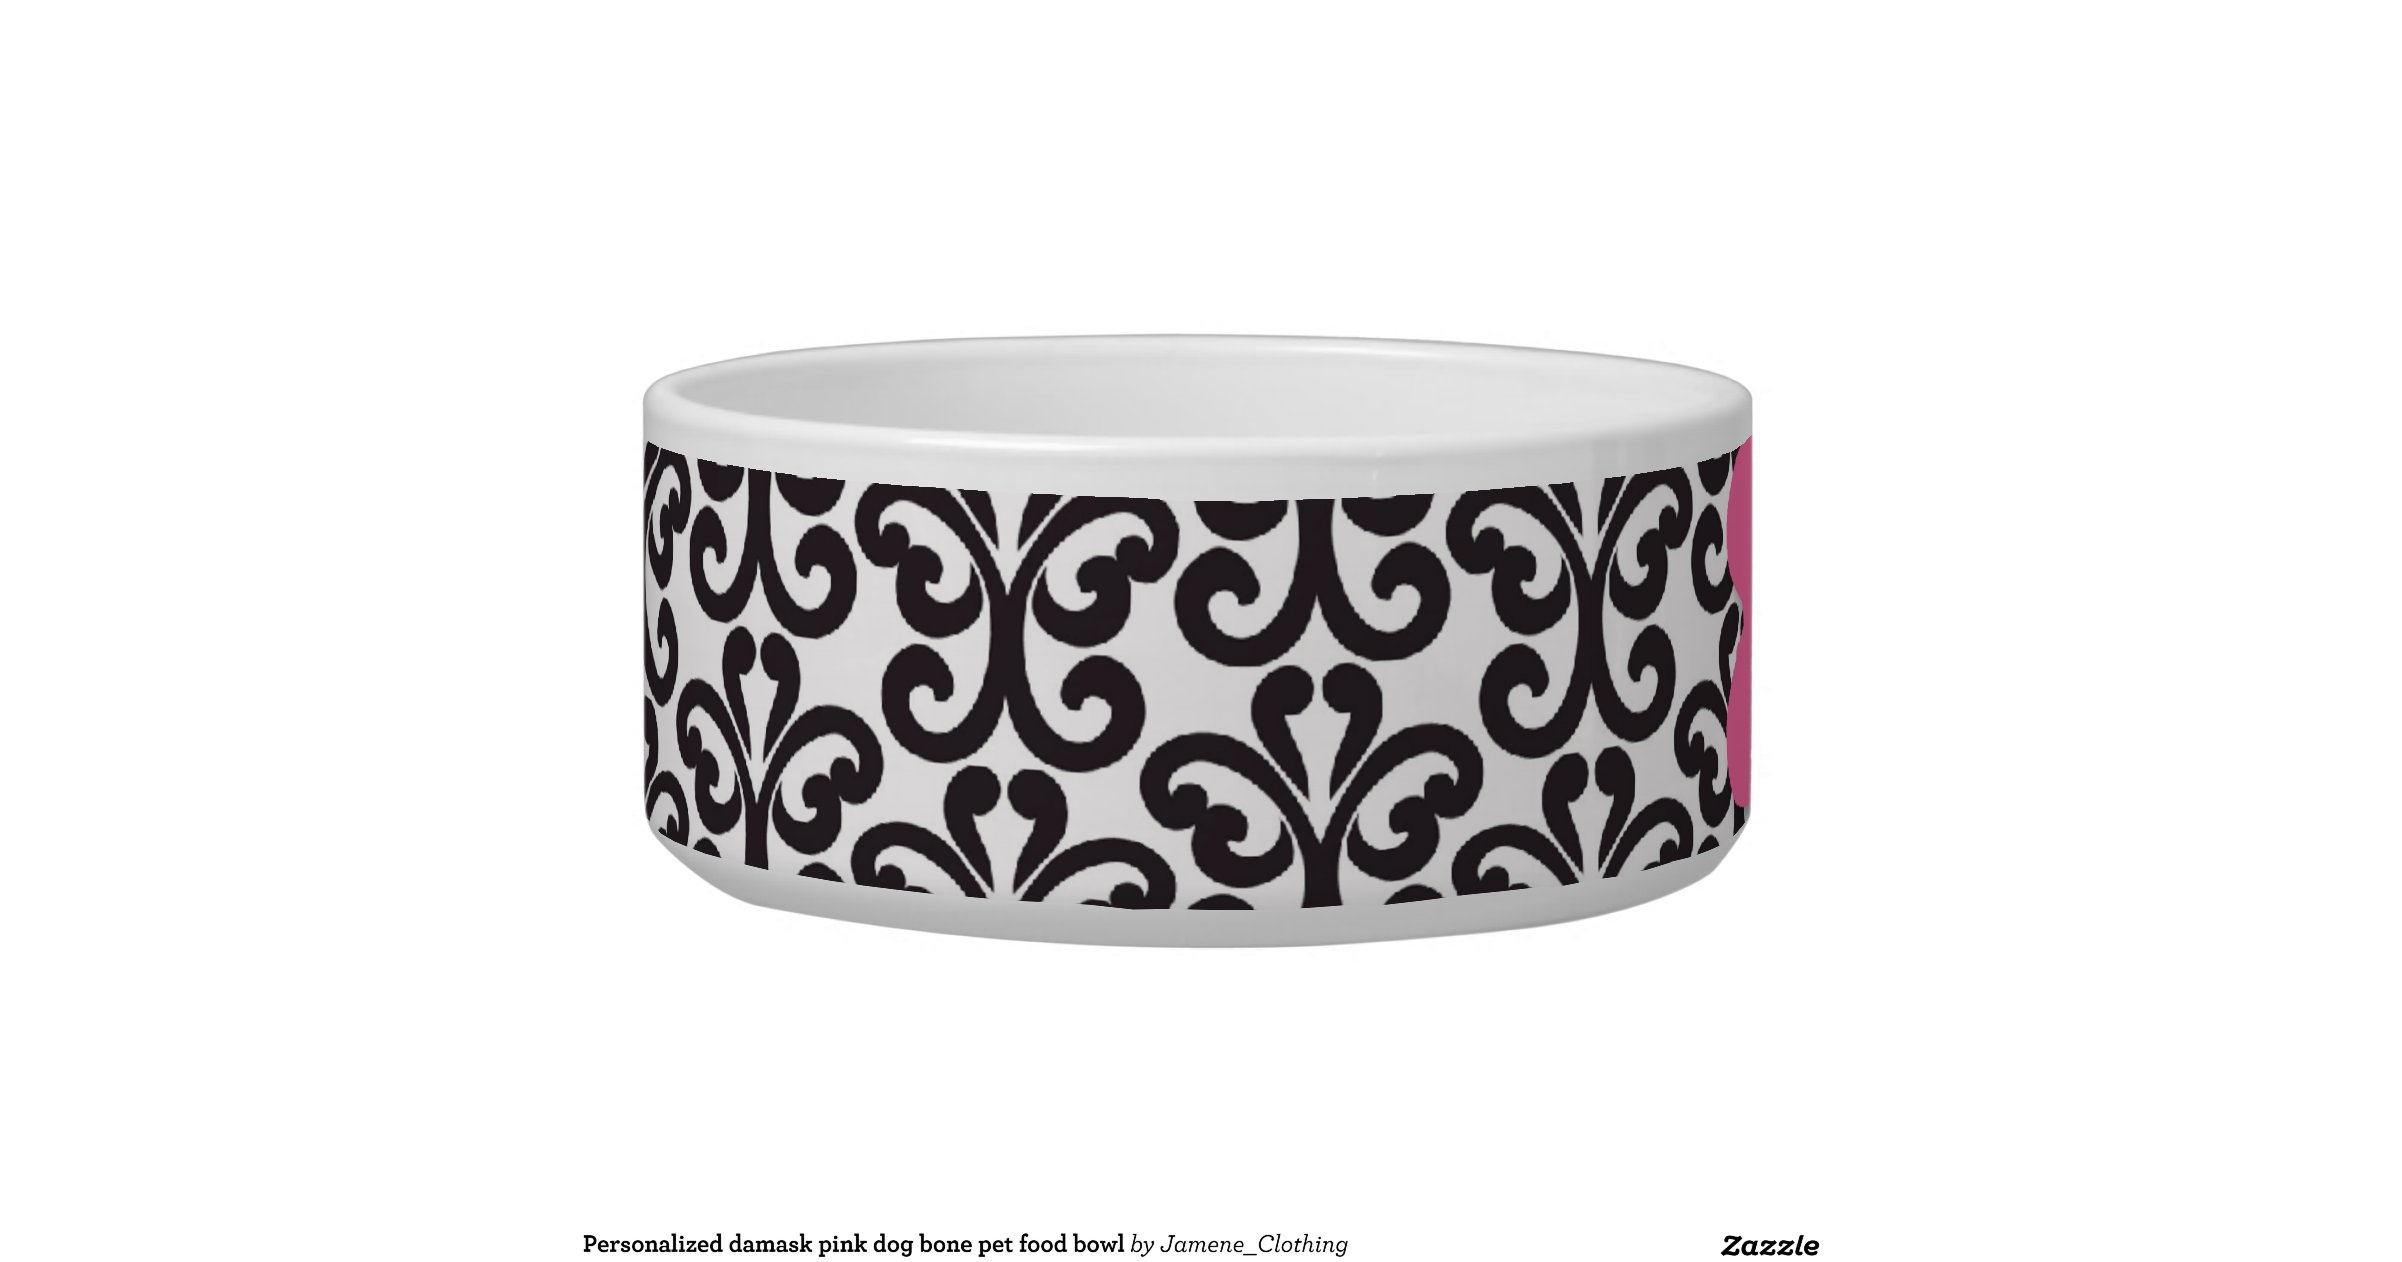 personalized_damask_pink_dog_bone_pet_food_bowl ... - photo#27